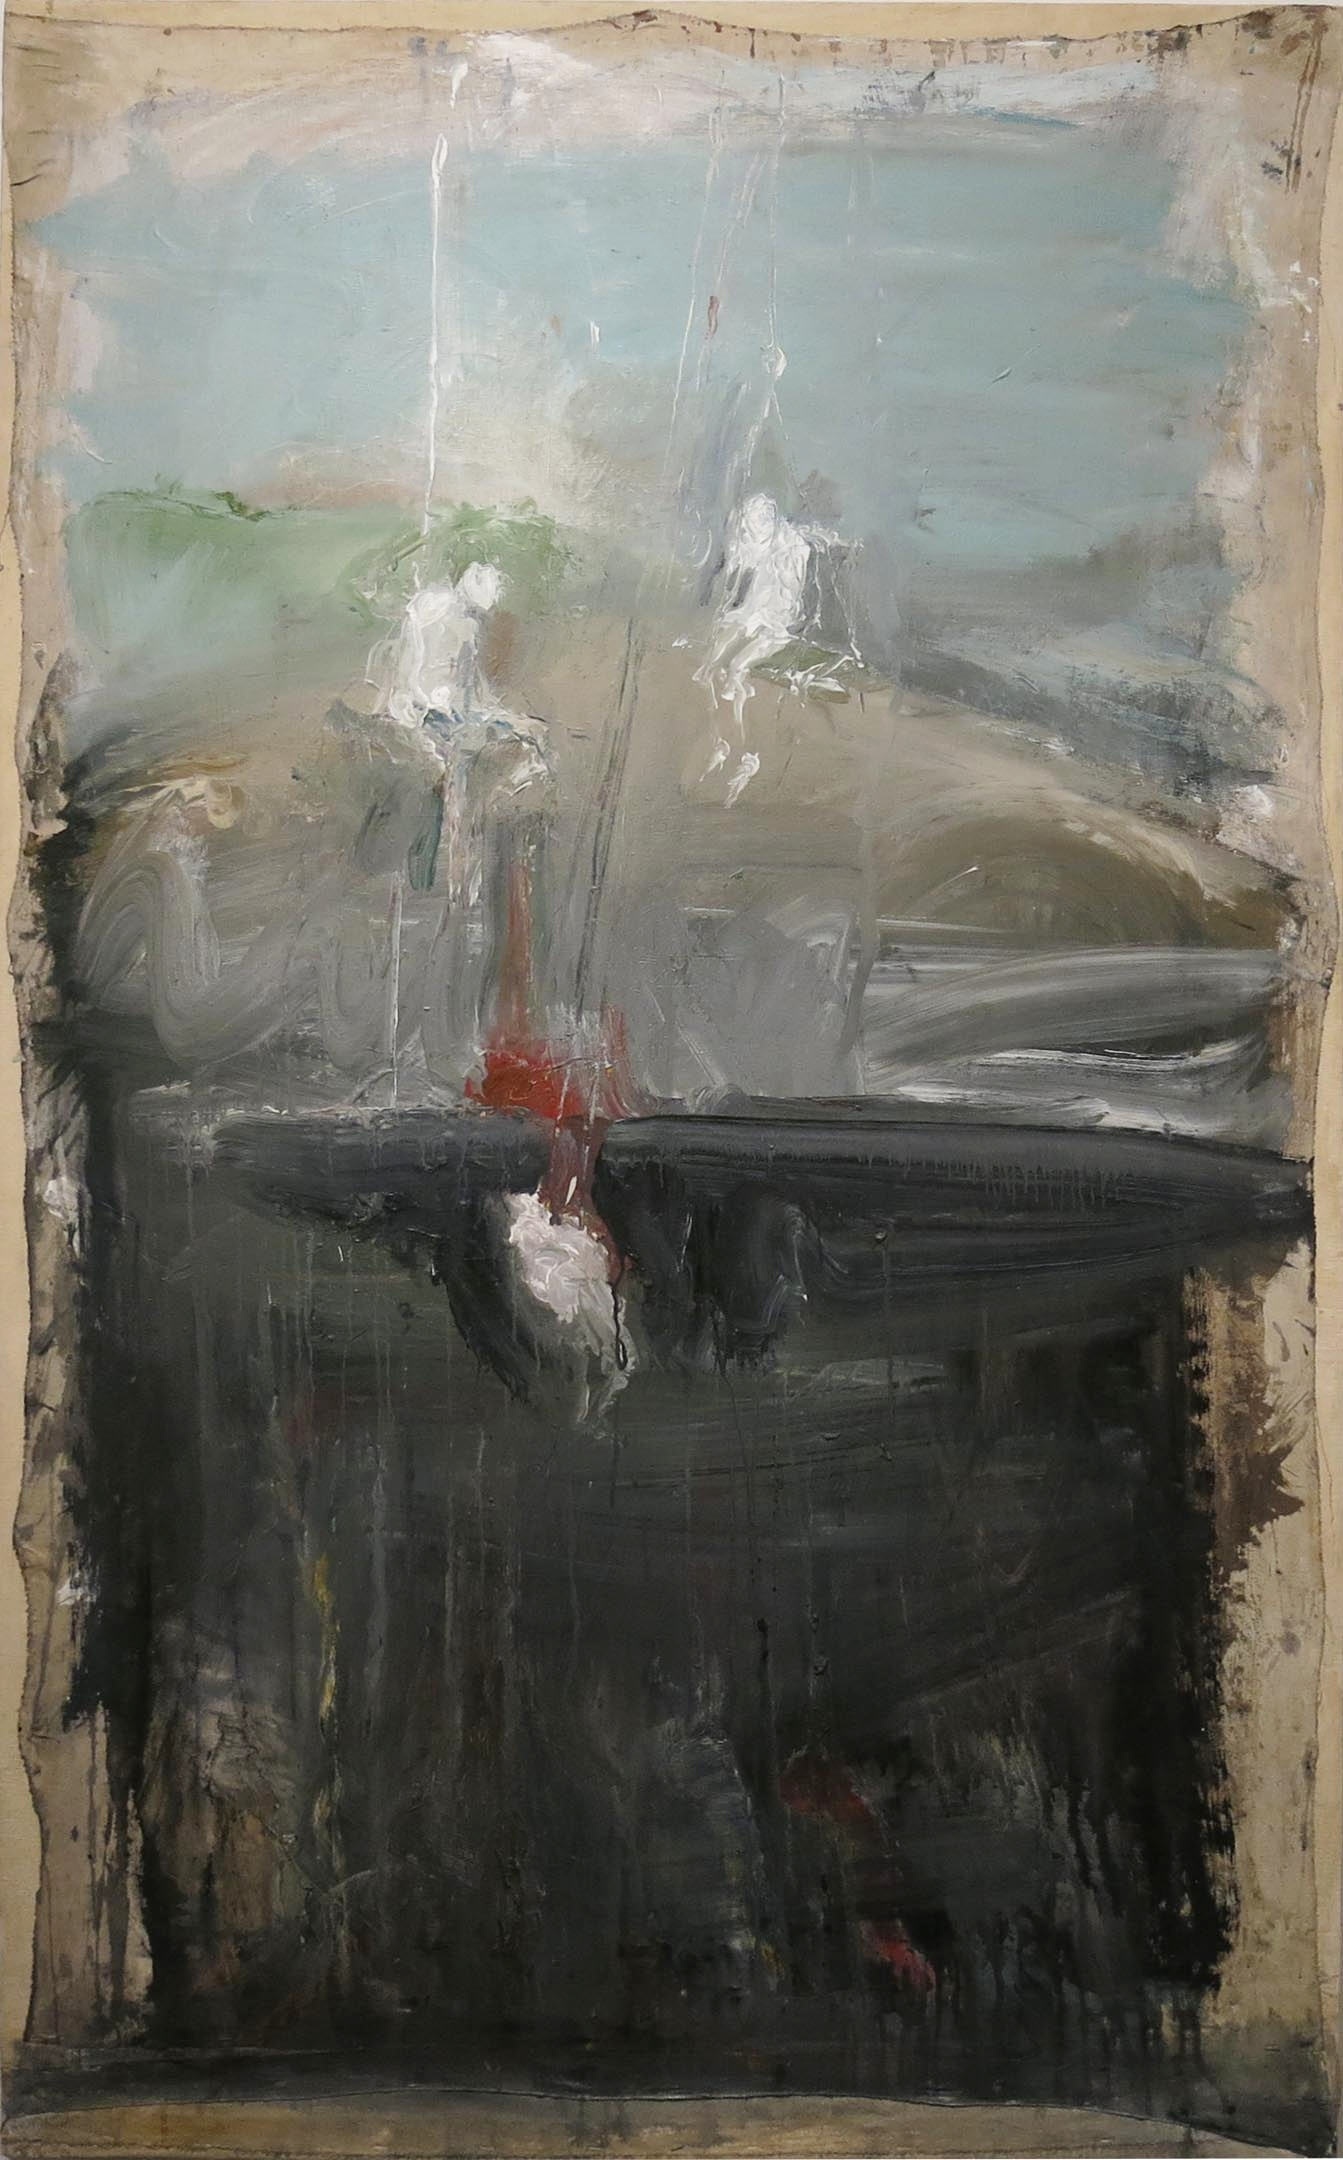 June Leaf, Figures Being Hoisted, 1999-2000, acrylic on canvas, 68.5h x 42w in.